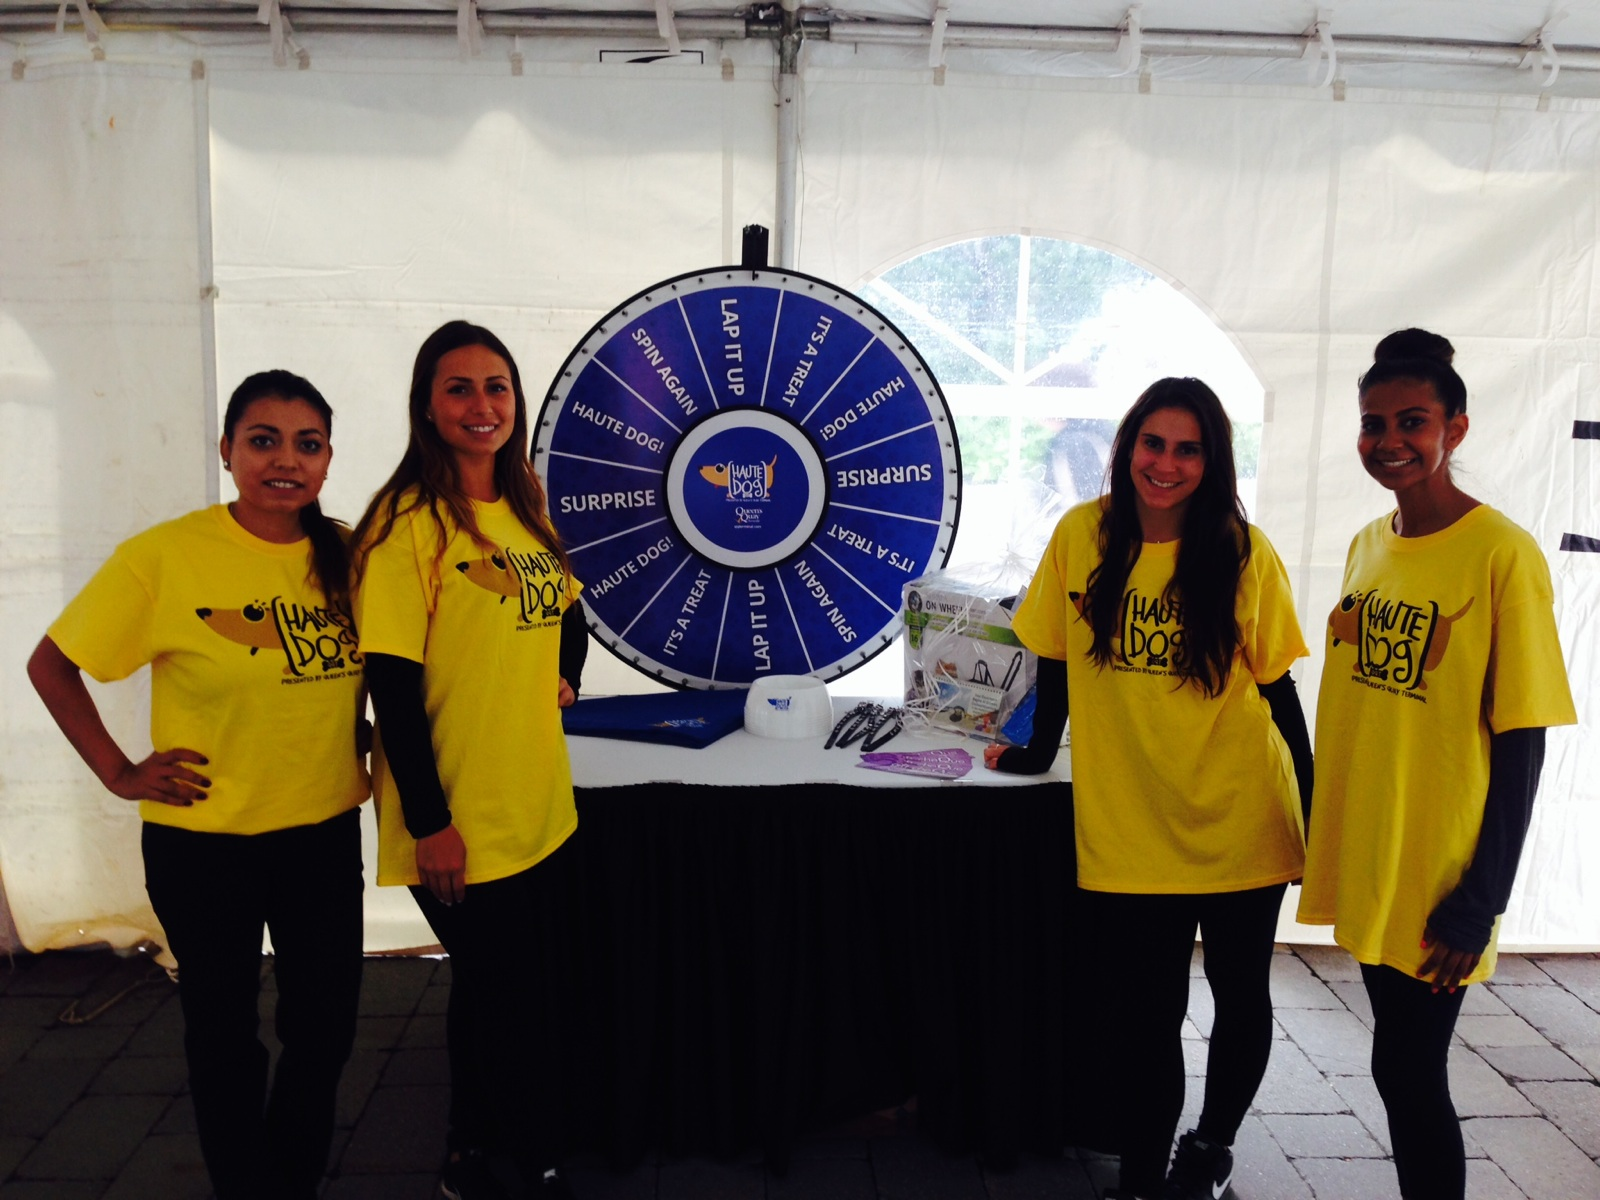 Queen's Quay - Mall School & Tradeshow Activations